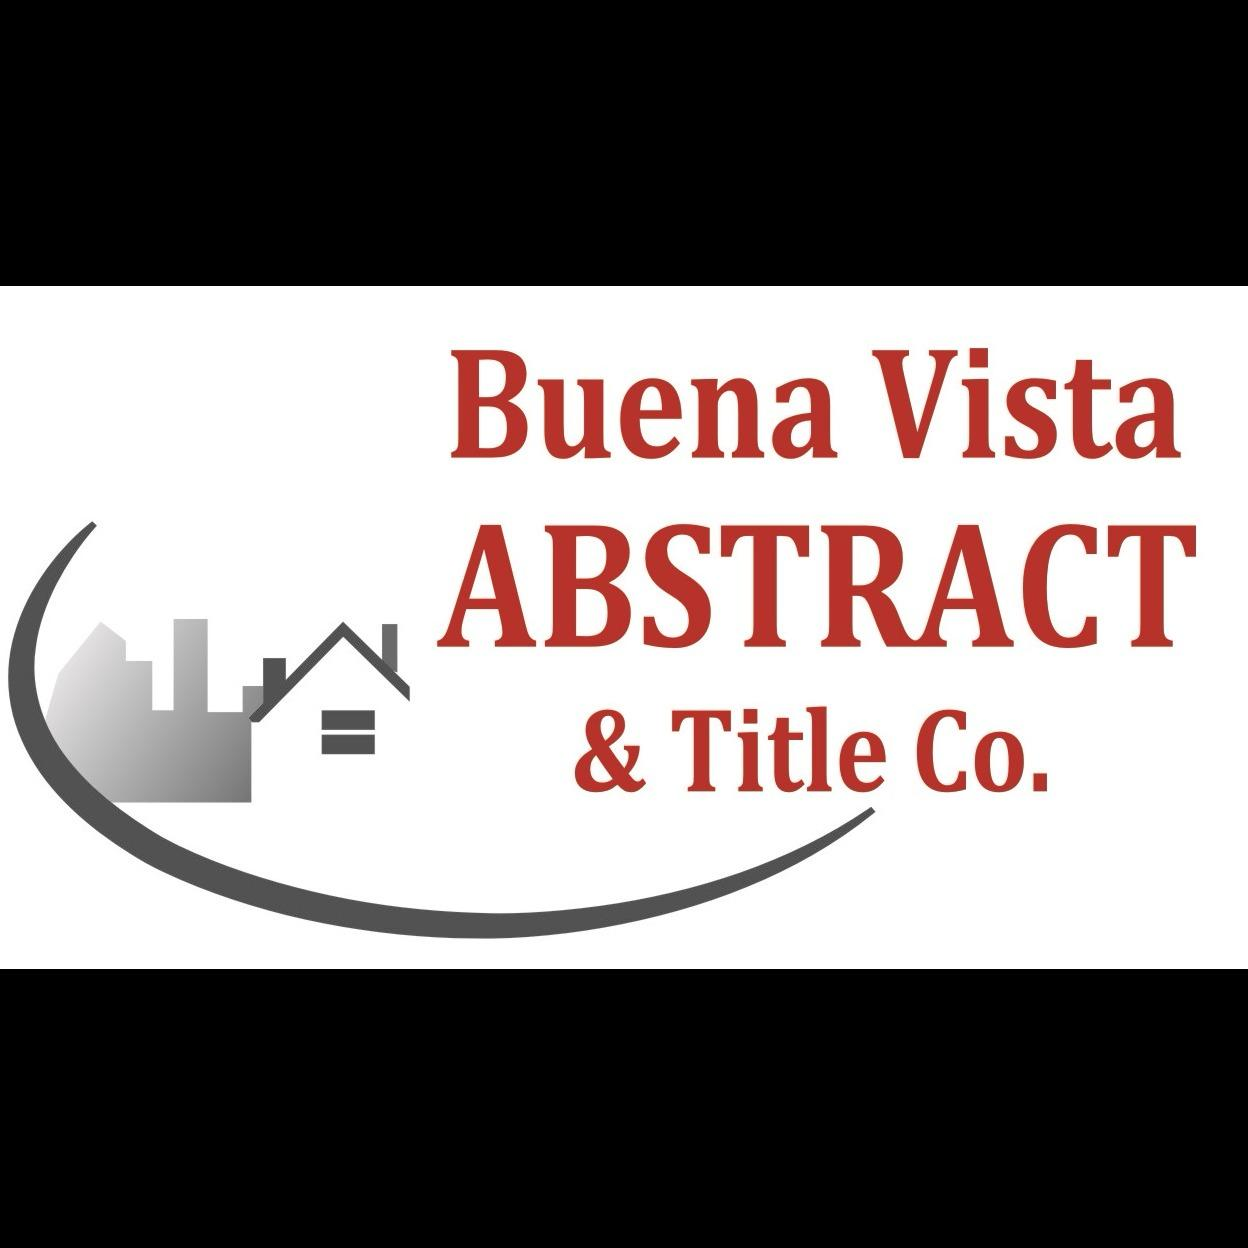 Buena Vista Abstract and Title Co